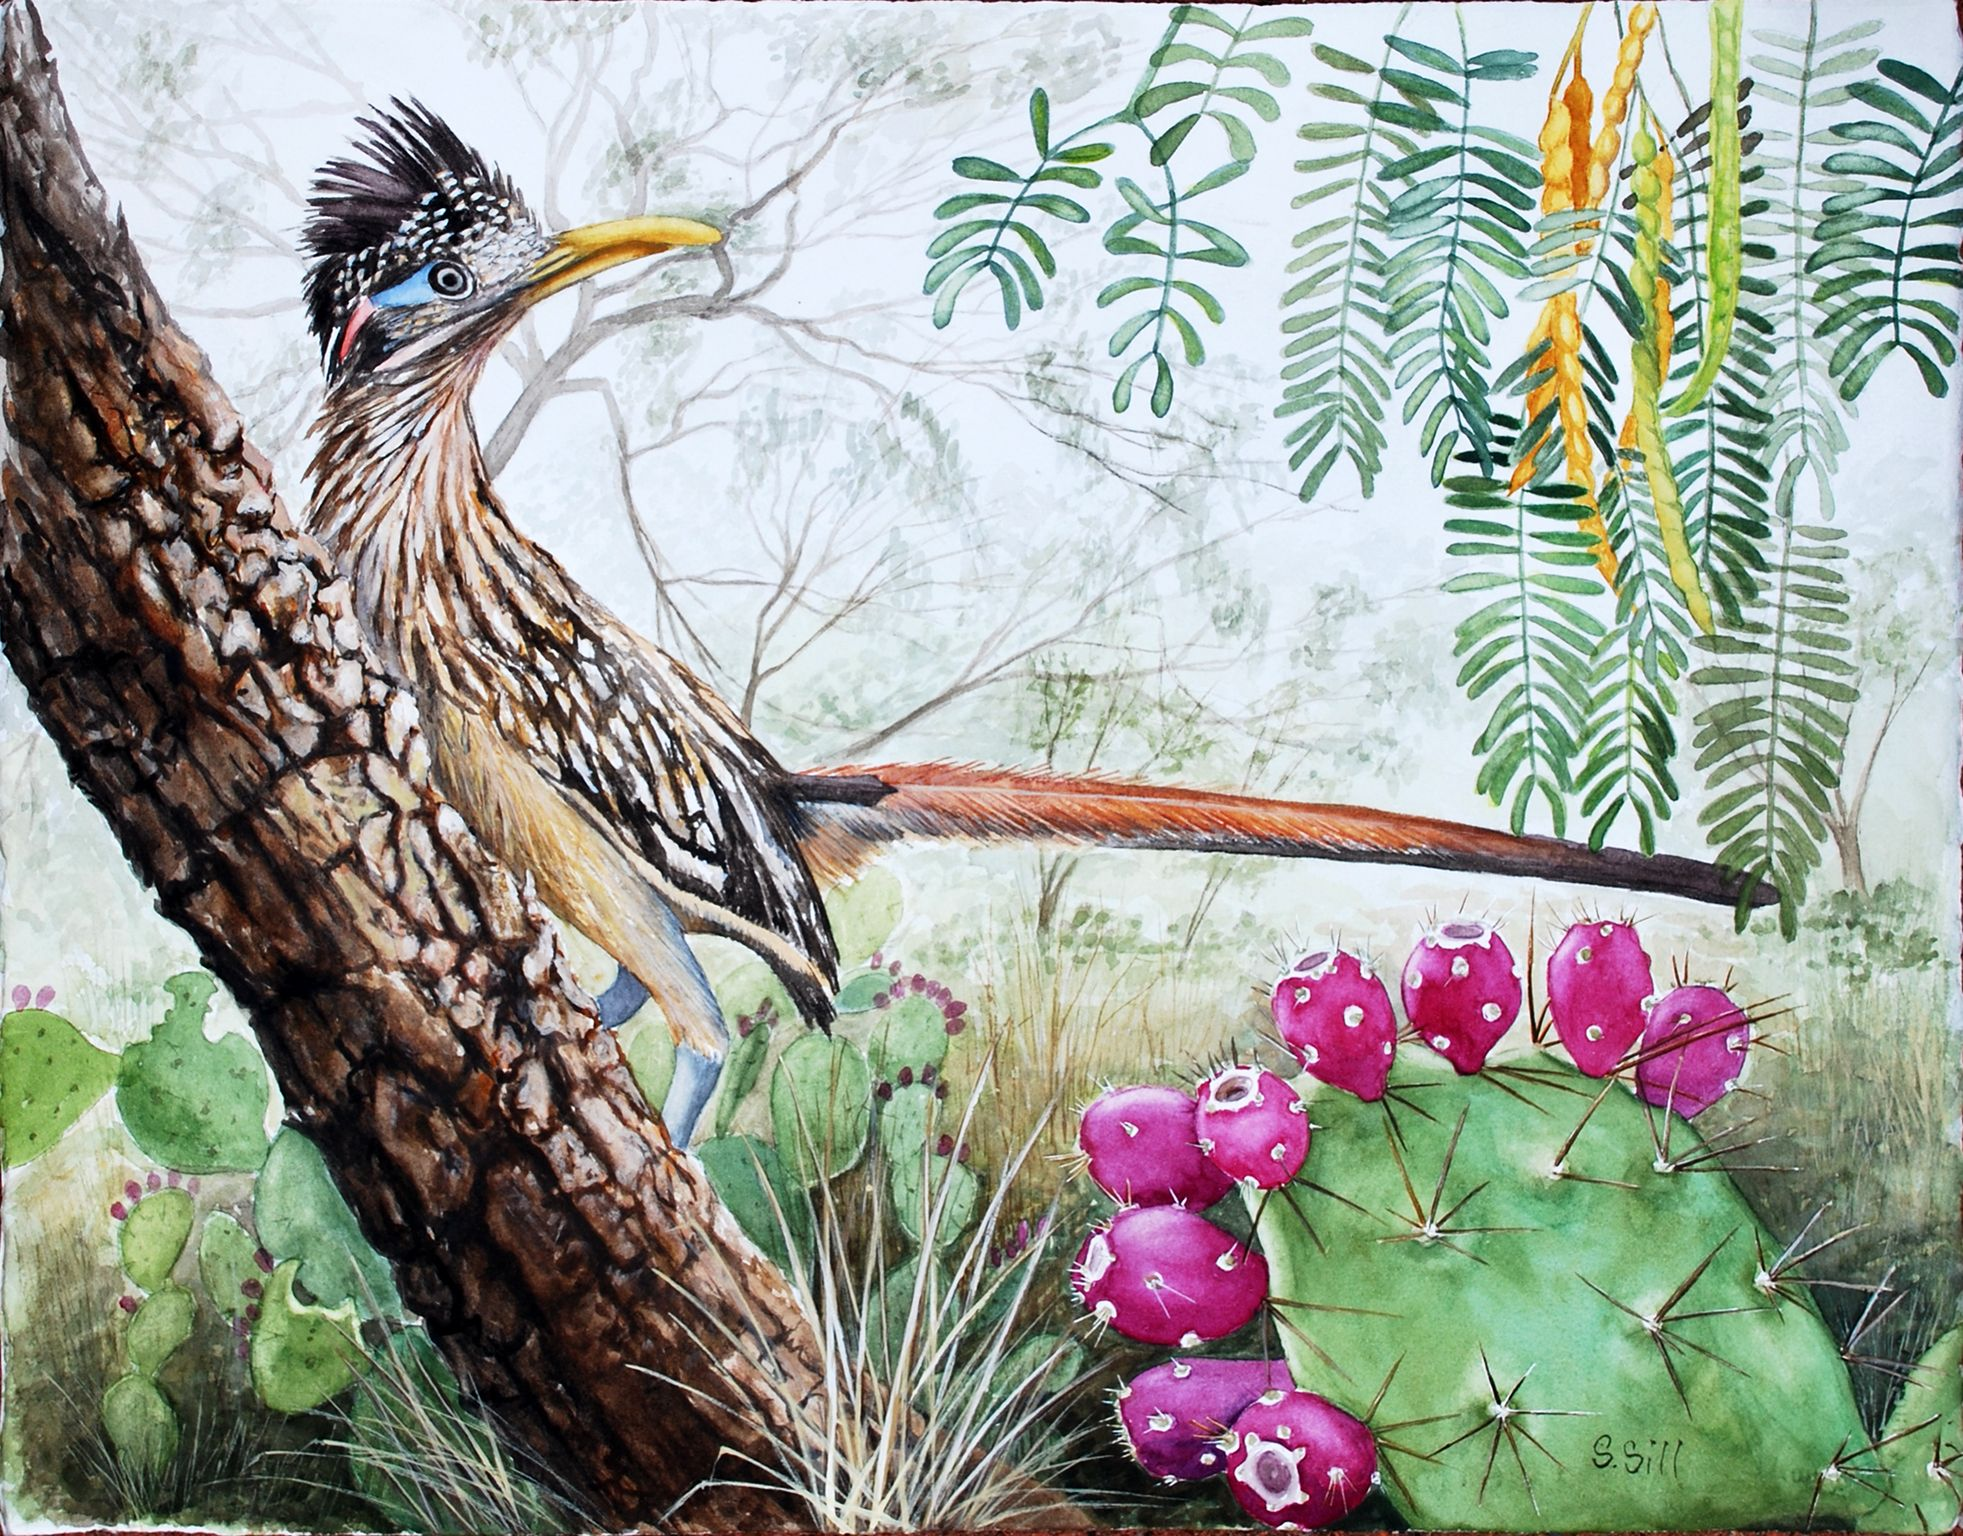 Watercolor artist in texas - Roadrunner In South Texas Mesquite Brush Watercolor Painting By Sue Sill